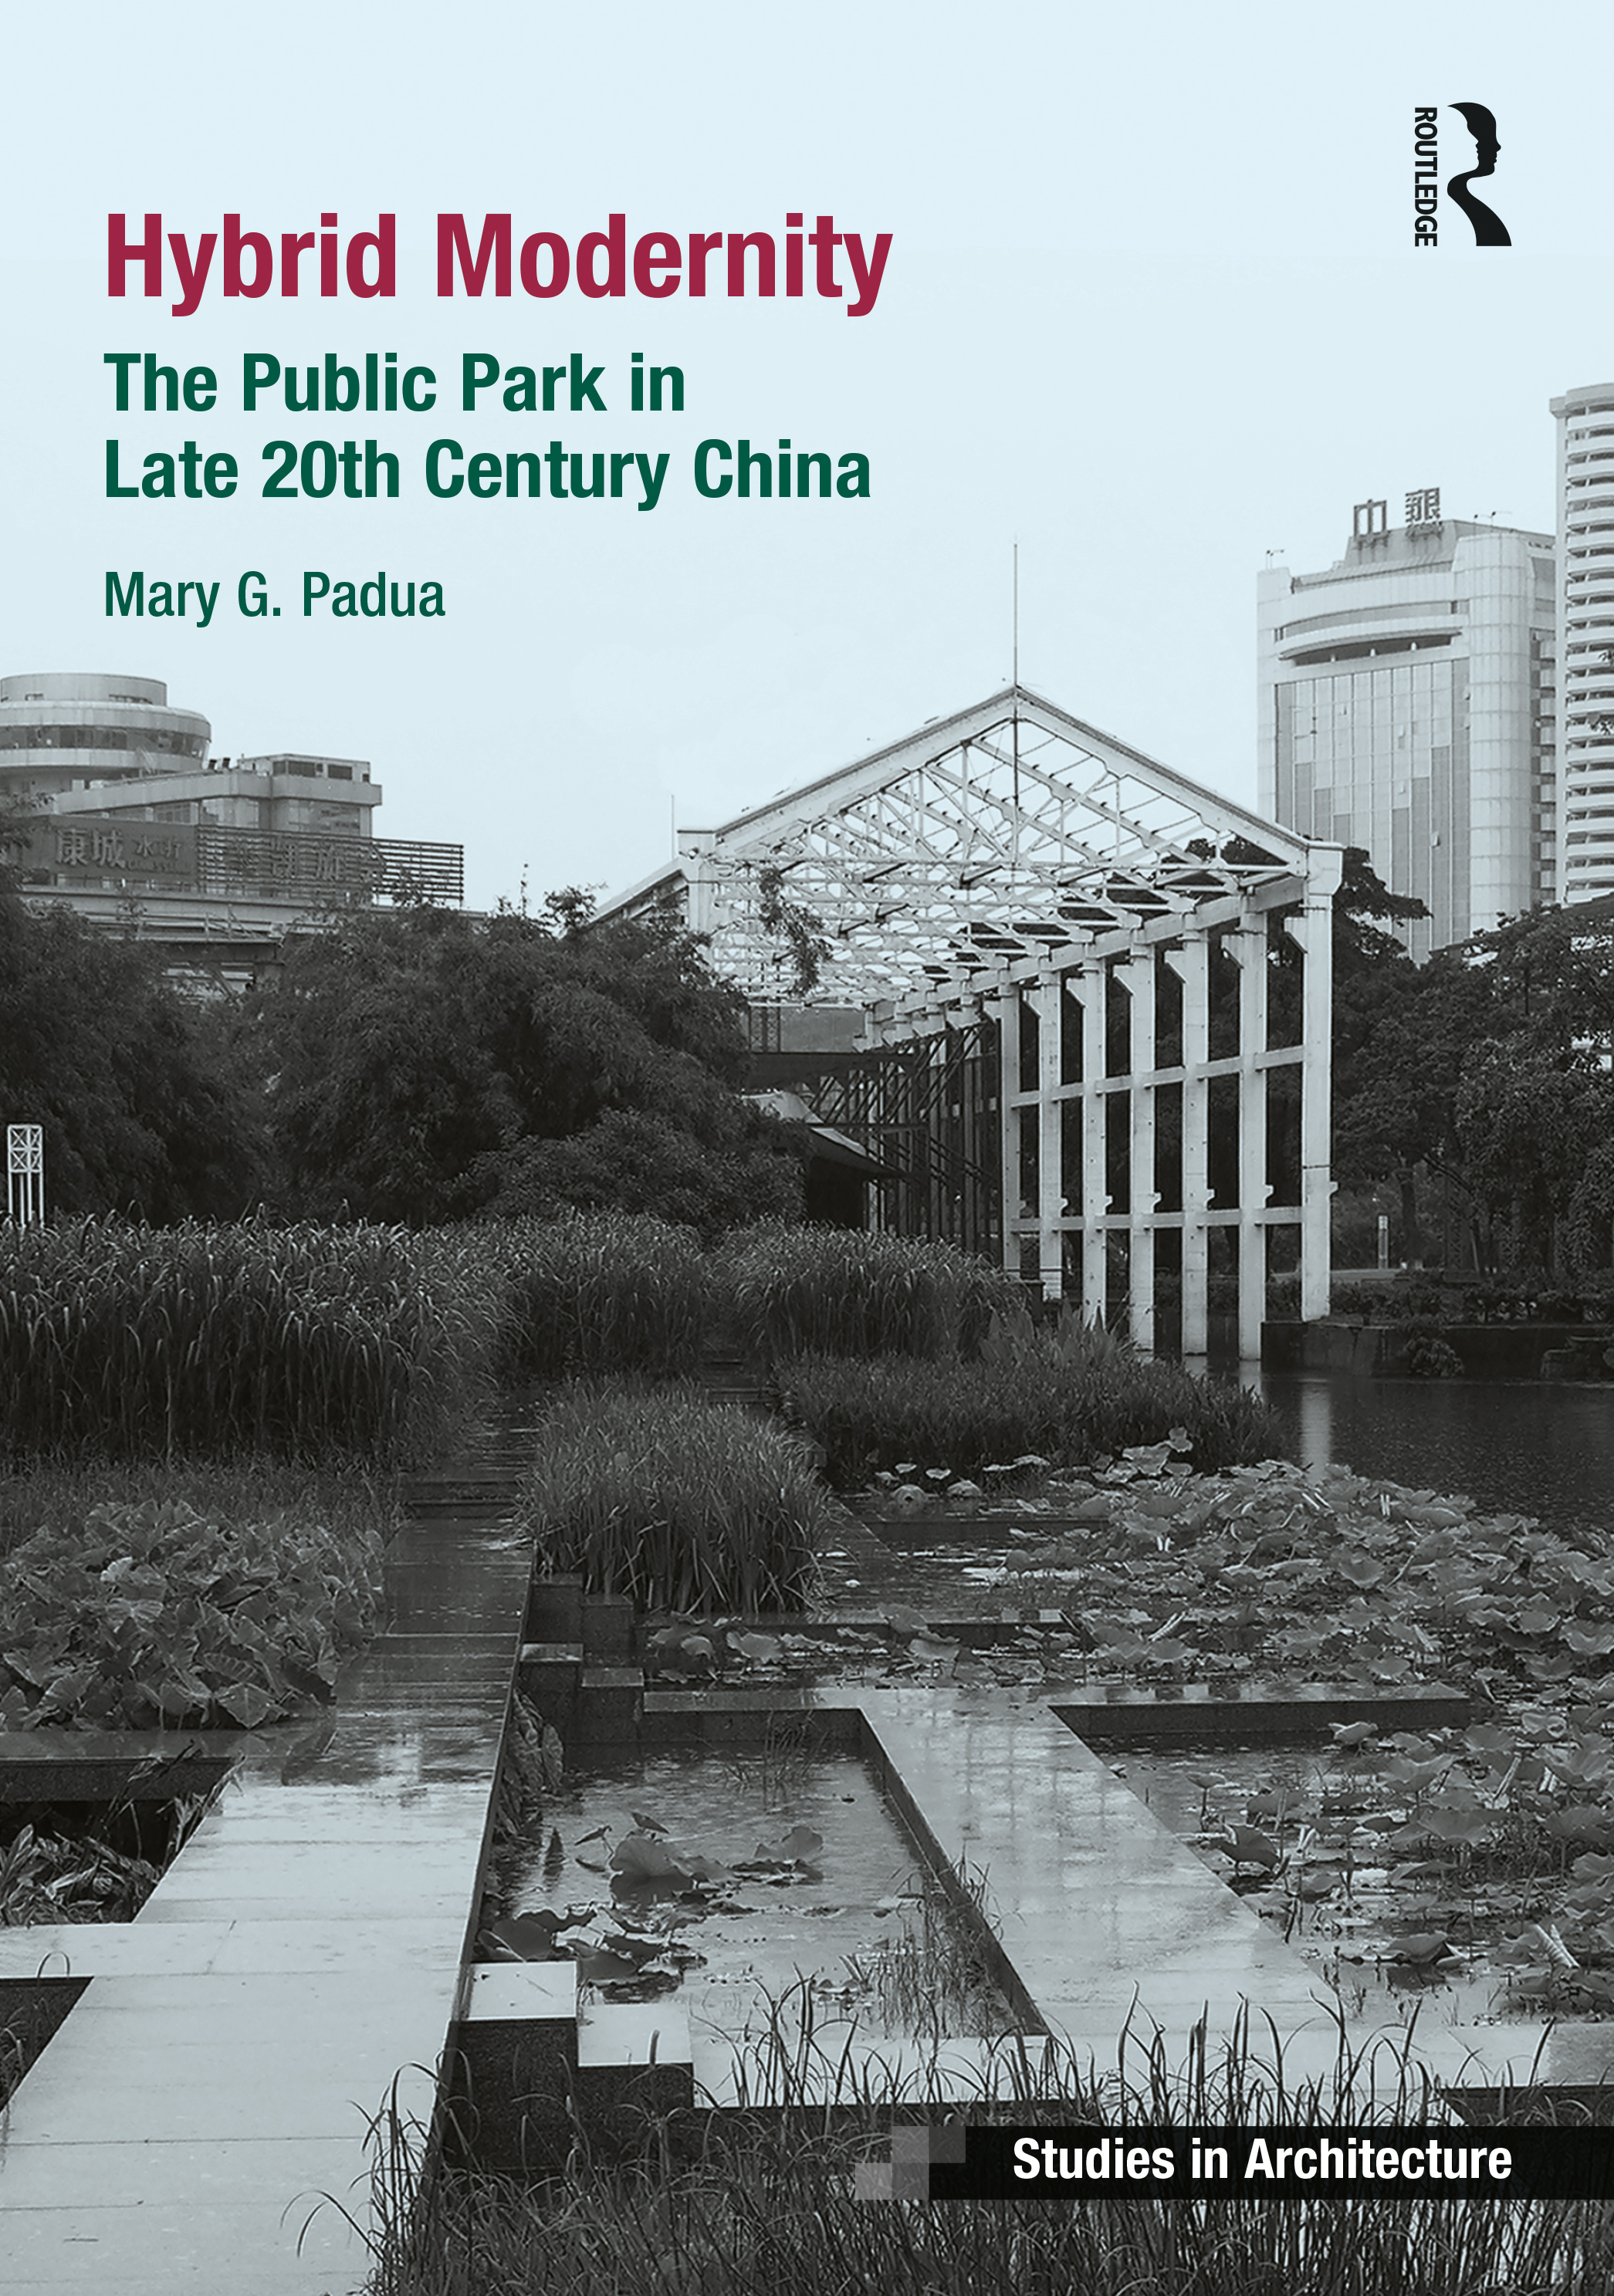 Hybrid Modernity: The Public Park in Late 20th Century China book cover